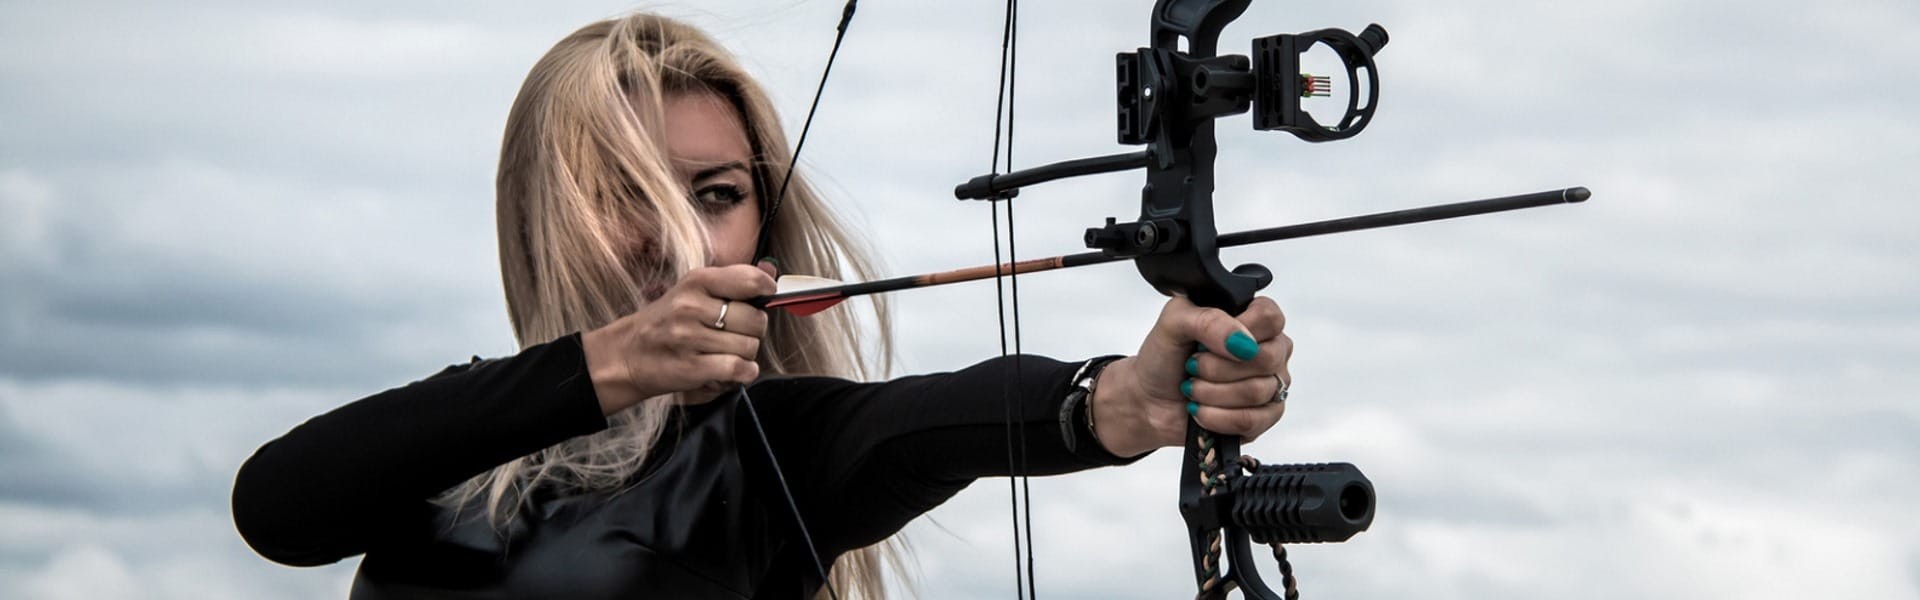 Best Compound Bows For Women Reviewed in Detail